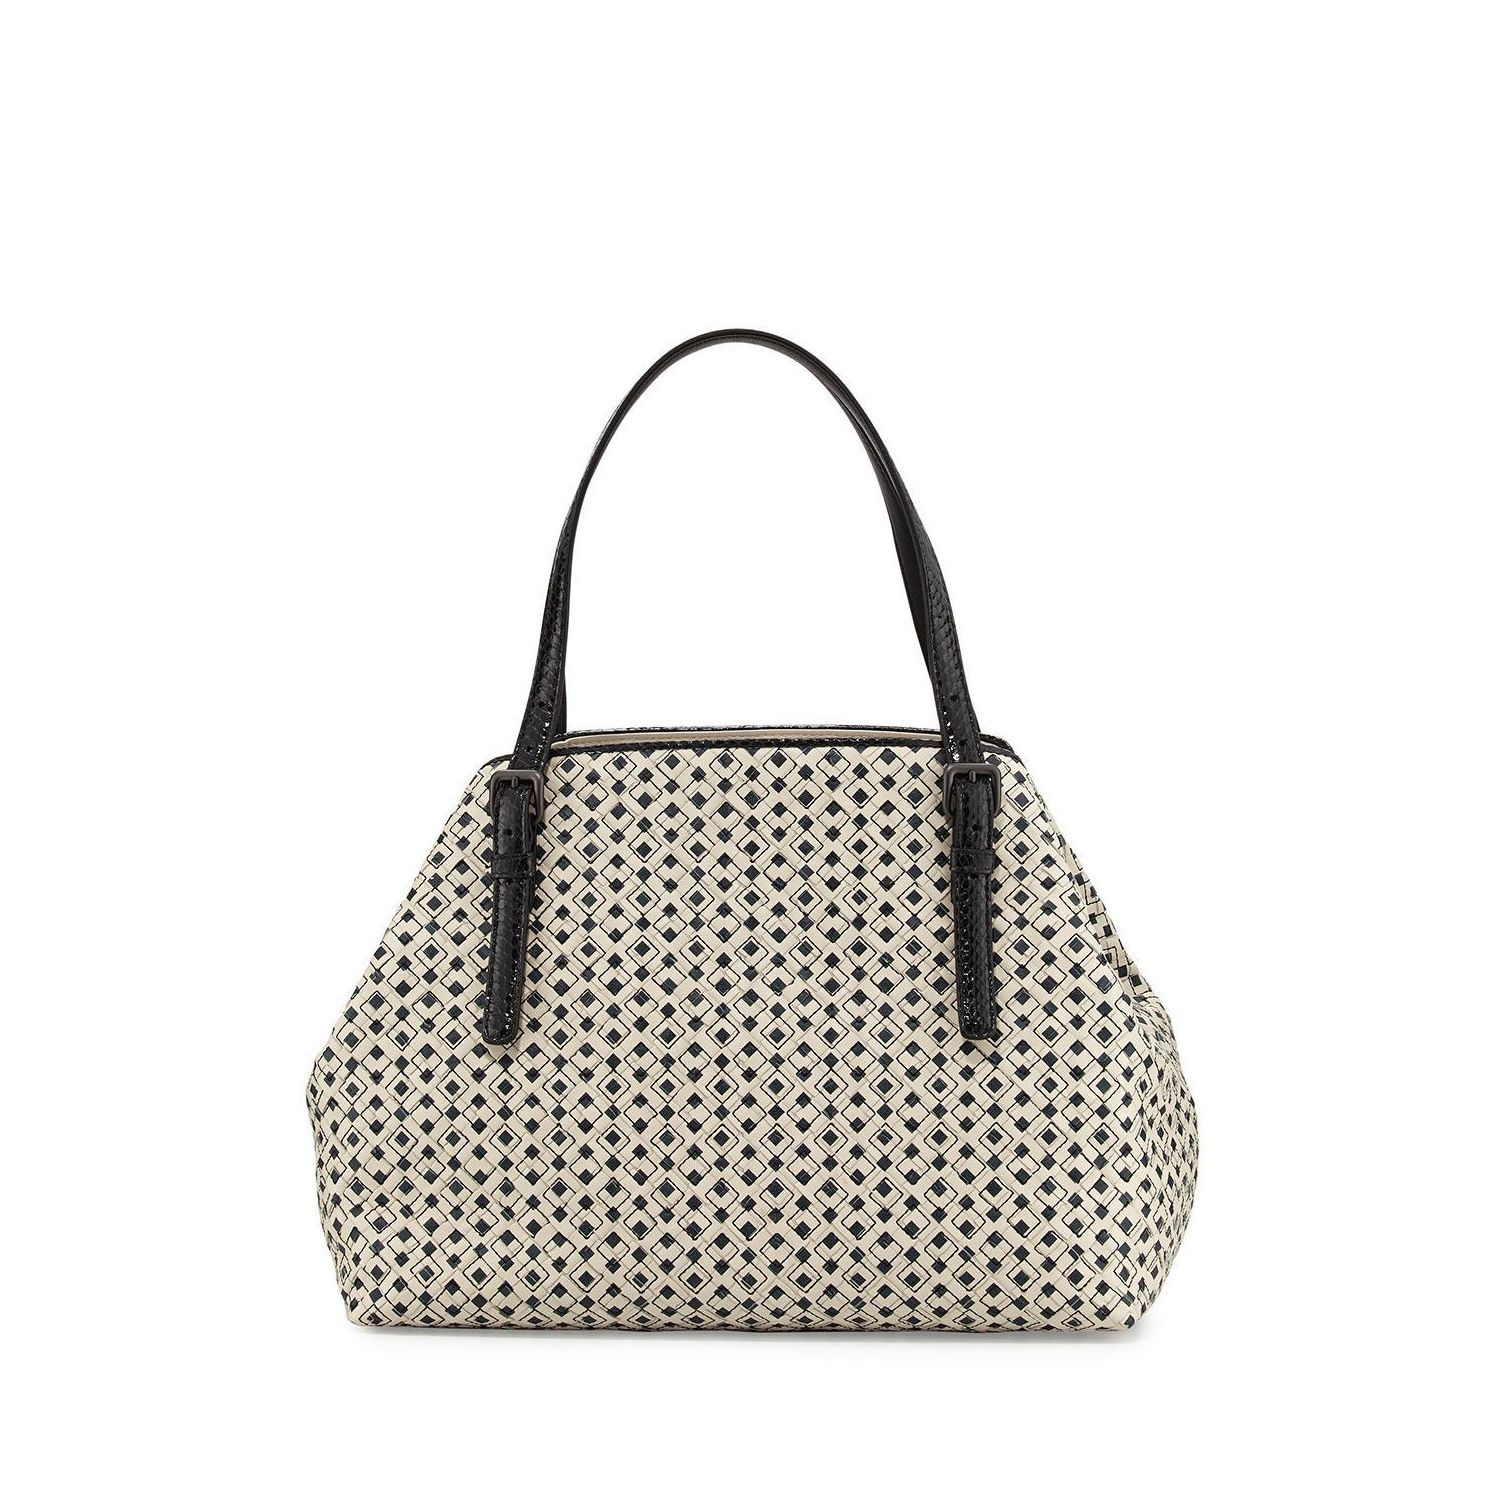 dbd4711f4a3bca Pin by Shedra Dudley on All about the bag! | Tote bag, Bottega ...